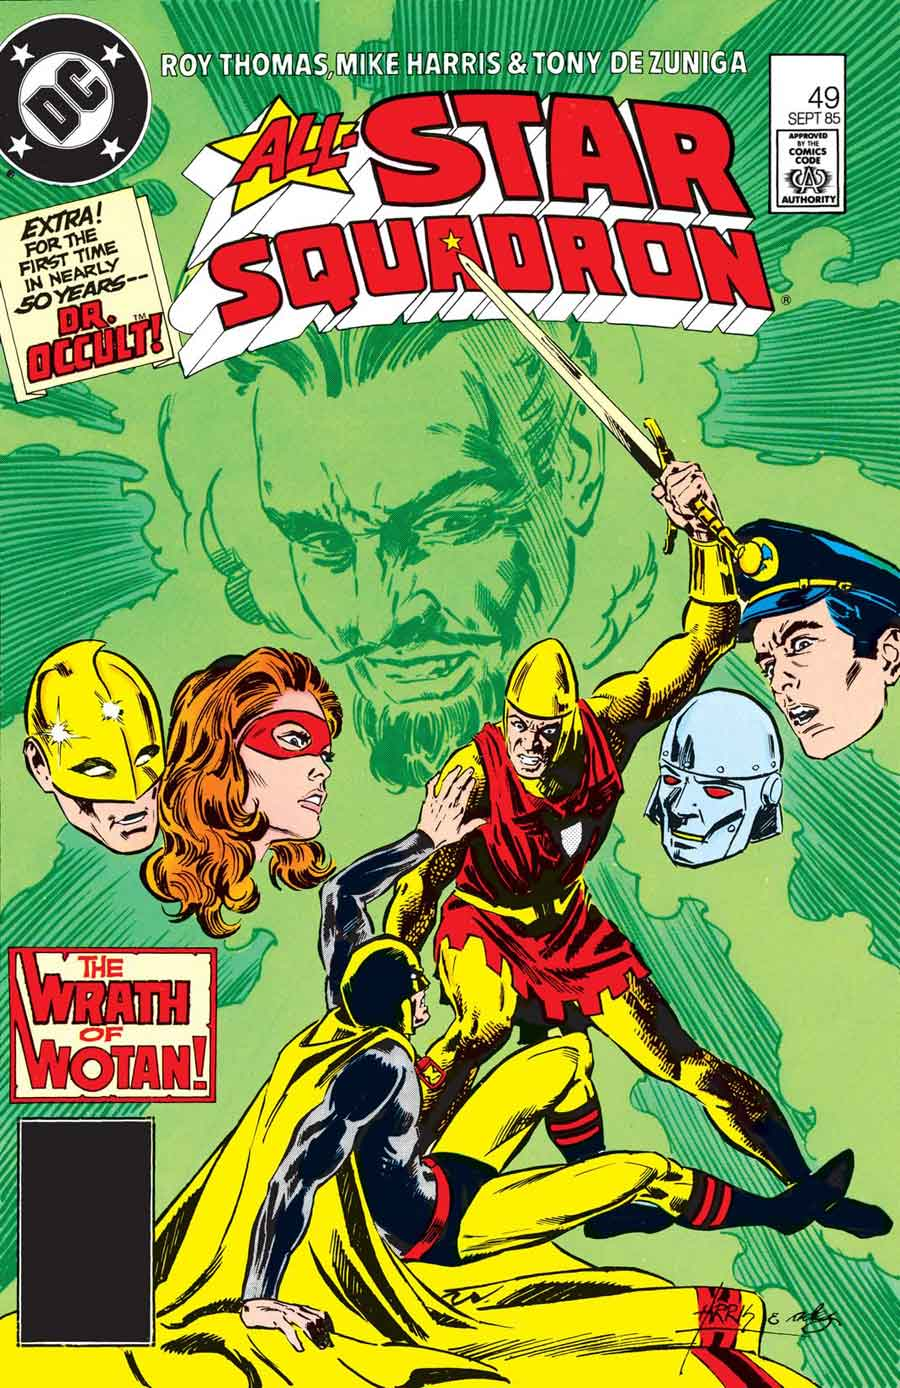 "All-Star Squadron #49 (September 1985): ""Death-Sword at Sunrise"" by Roy Thomas, Mike Harris and Tony DeZuniga"